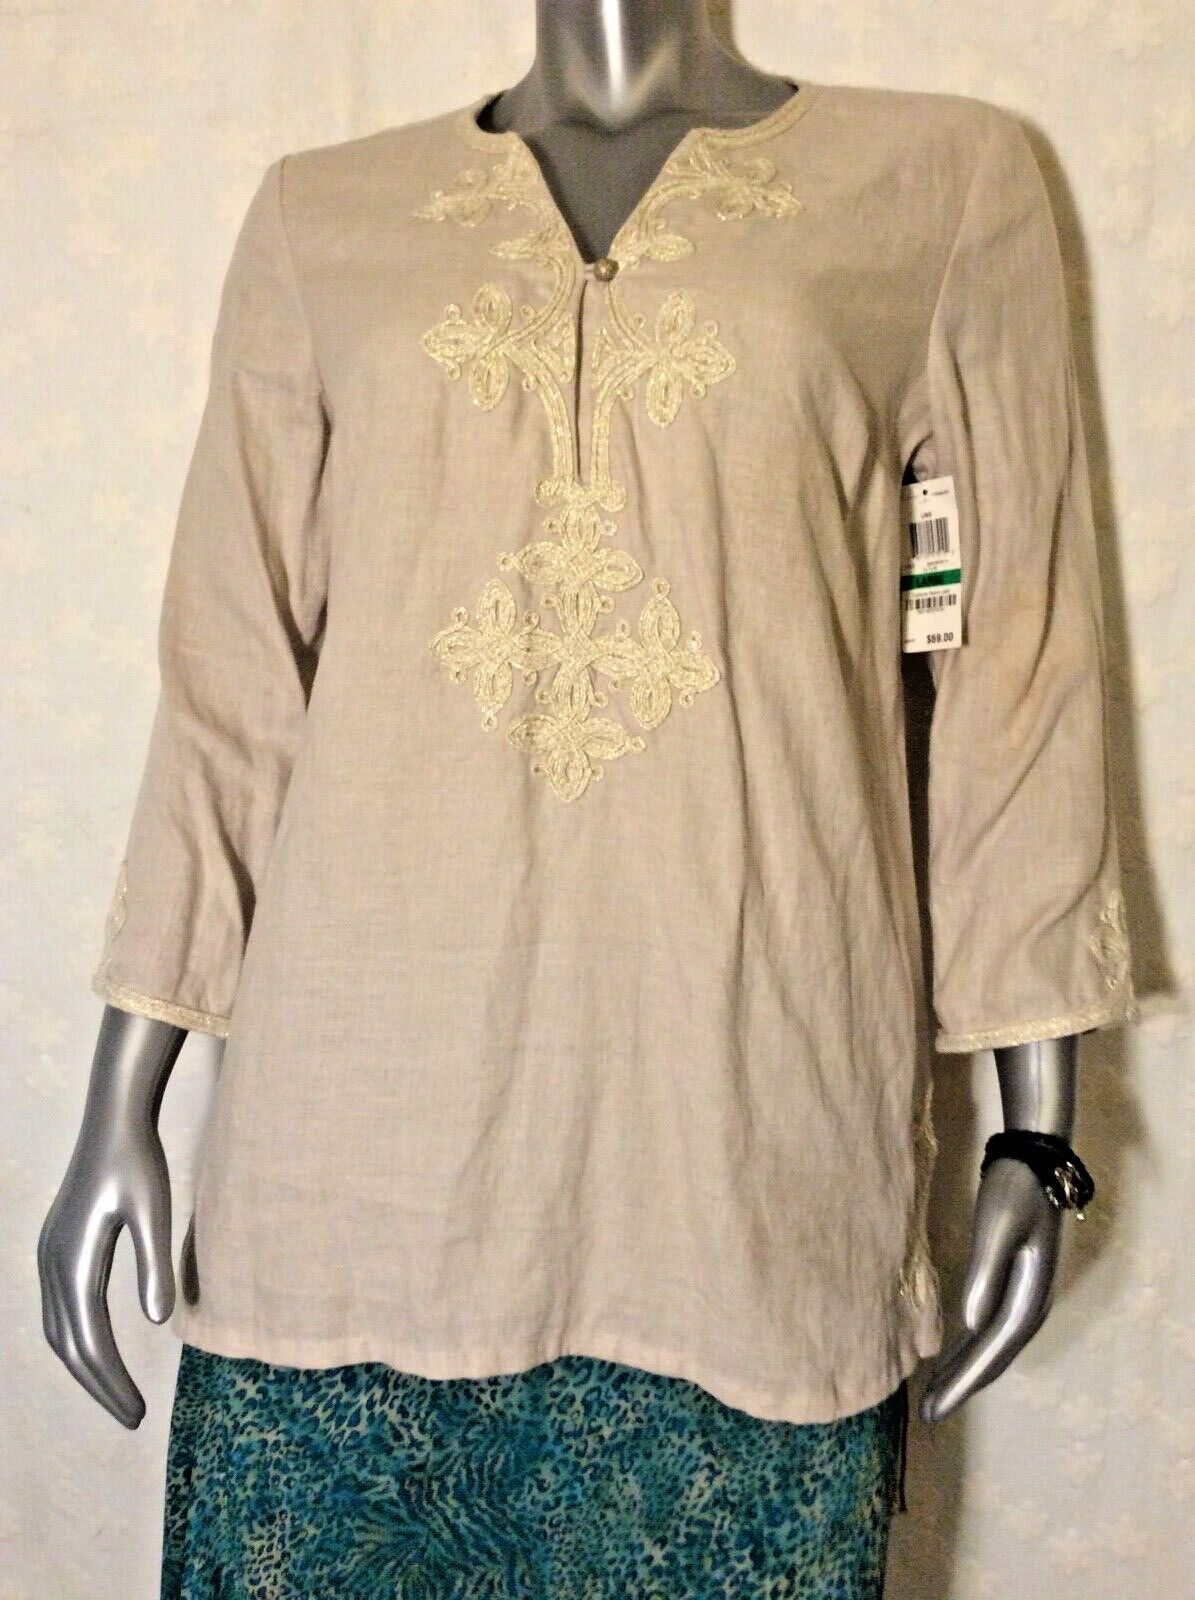 Charter Club NWT Luxury Linens SZLarge Flax Color Tunic Gold